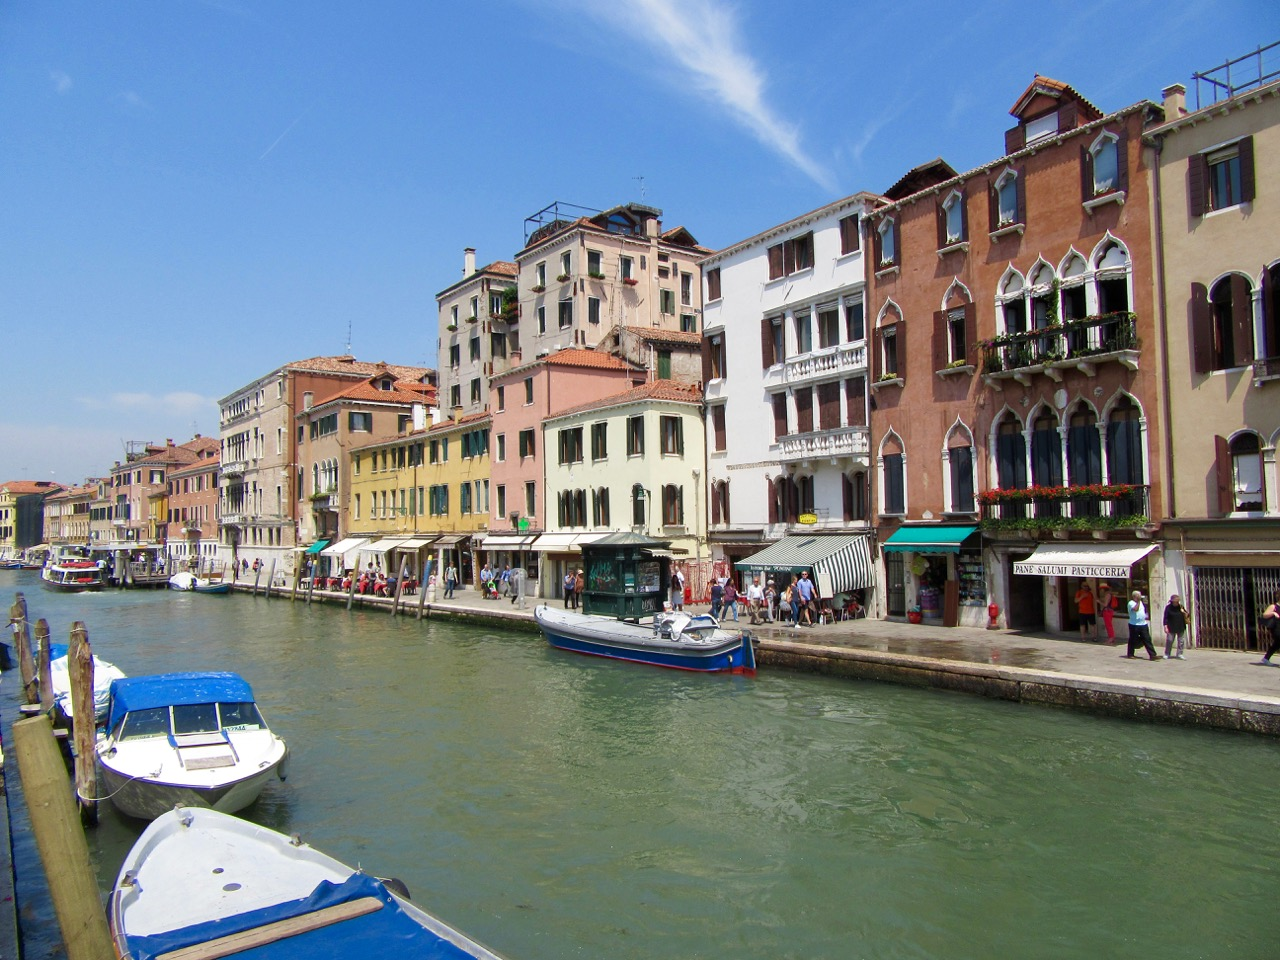 One of the beautiful sites of Venice.